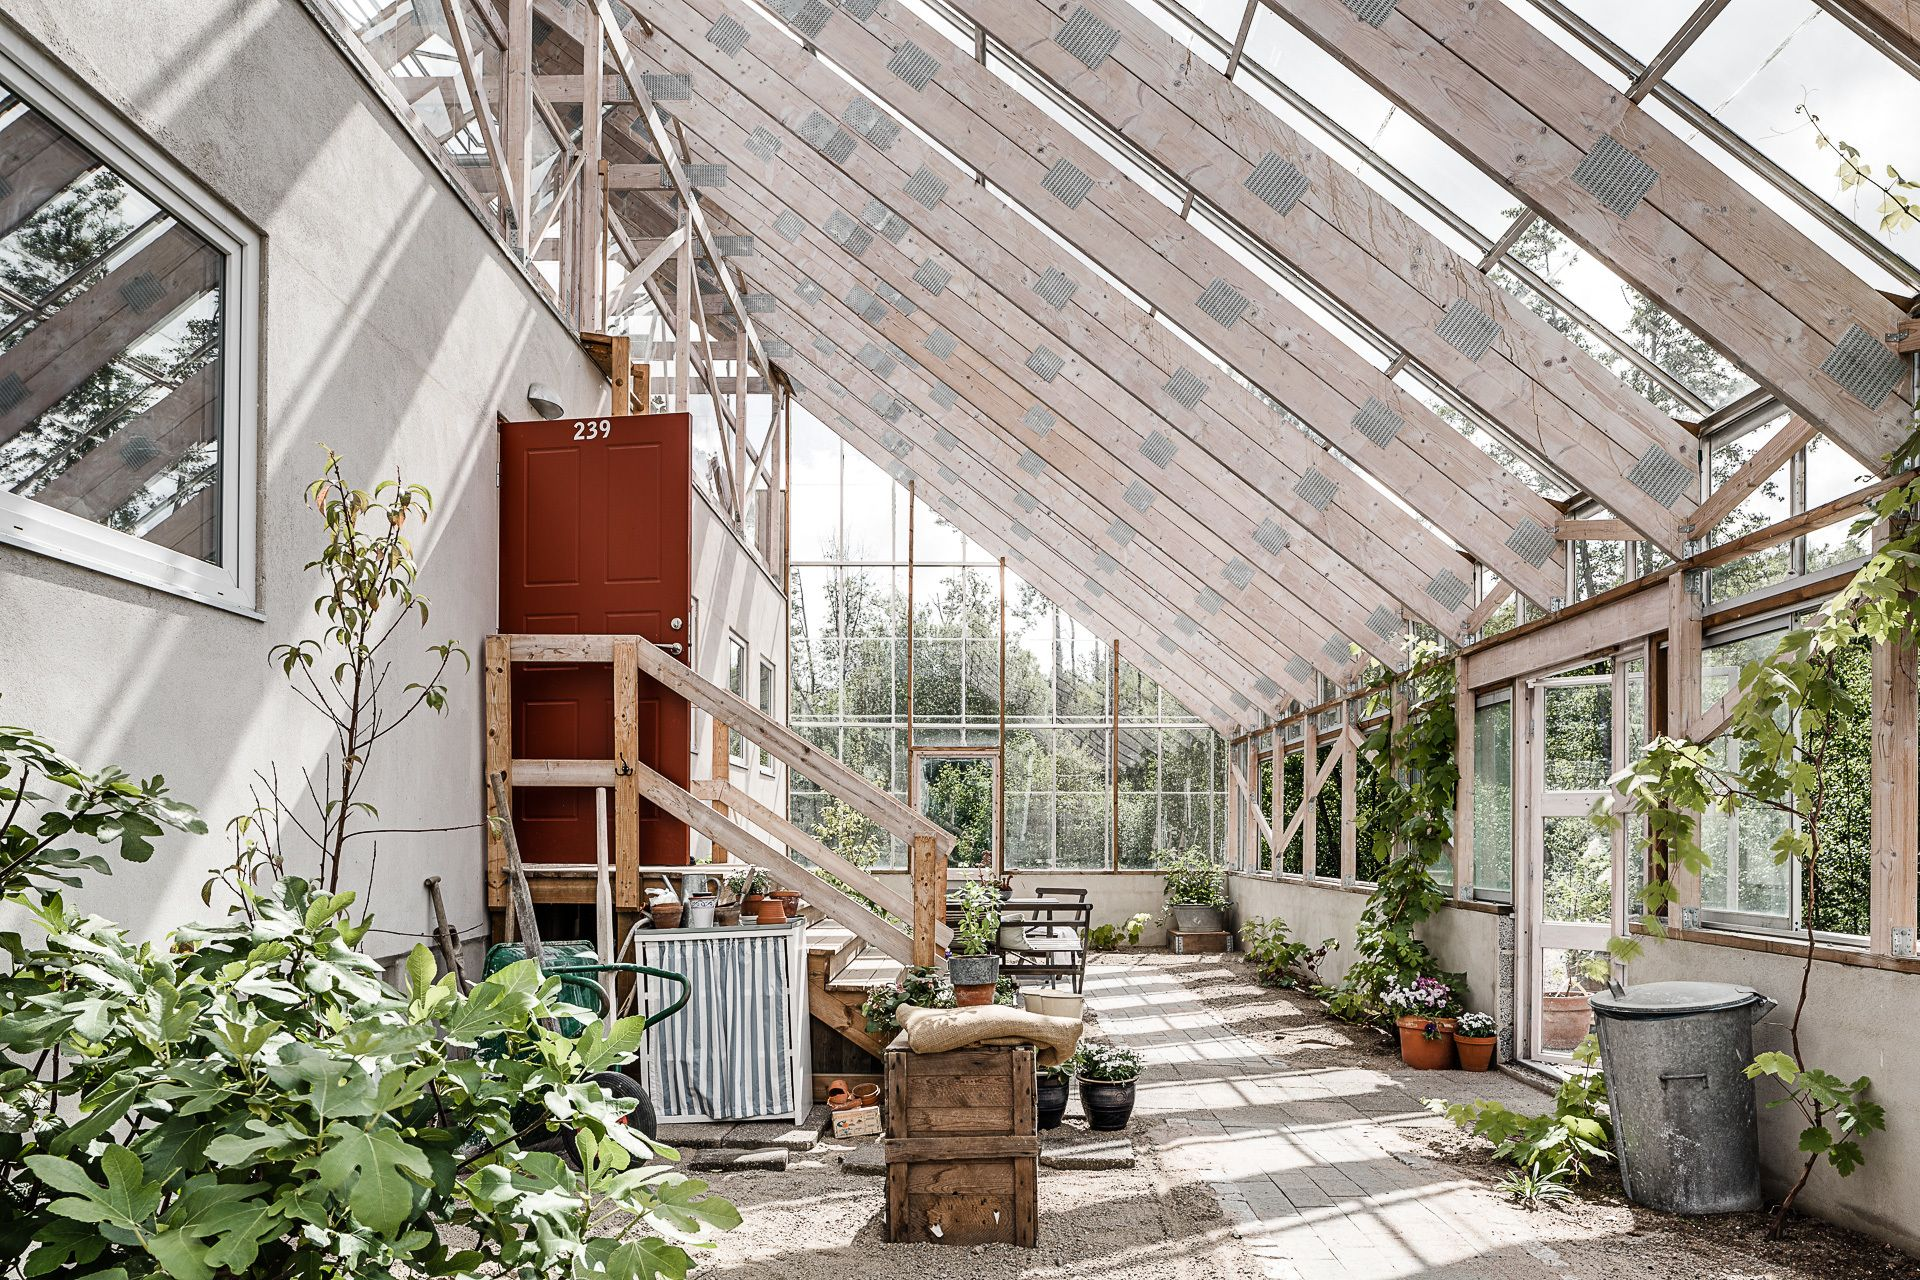 Best Of How to Make Sunroom